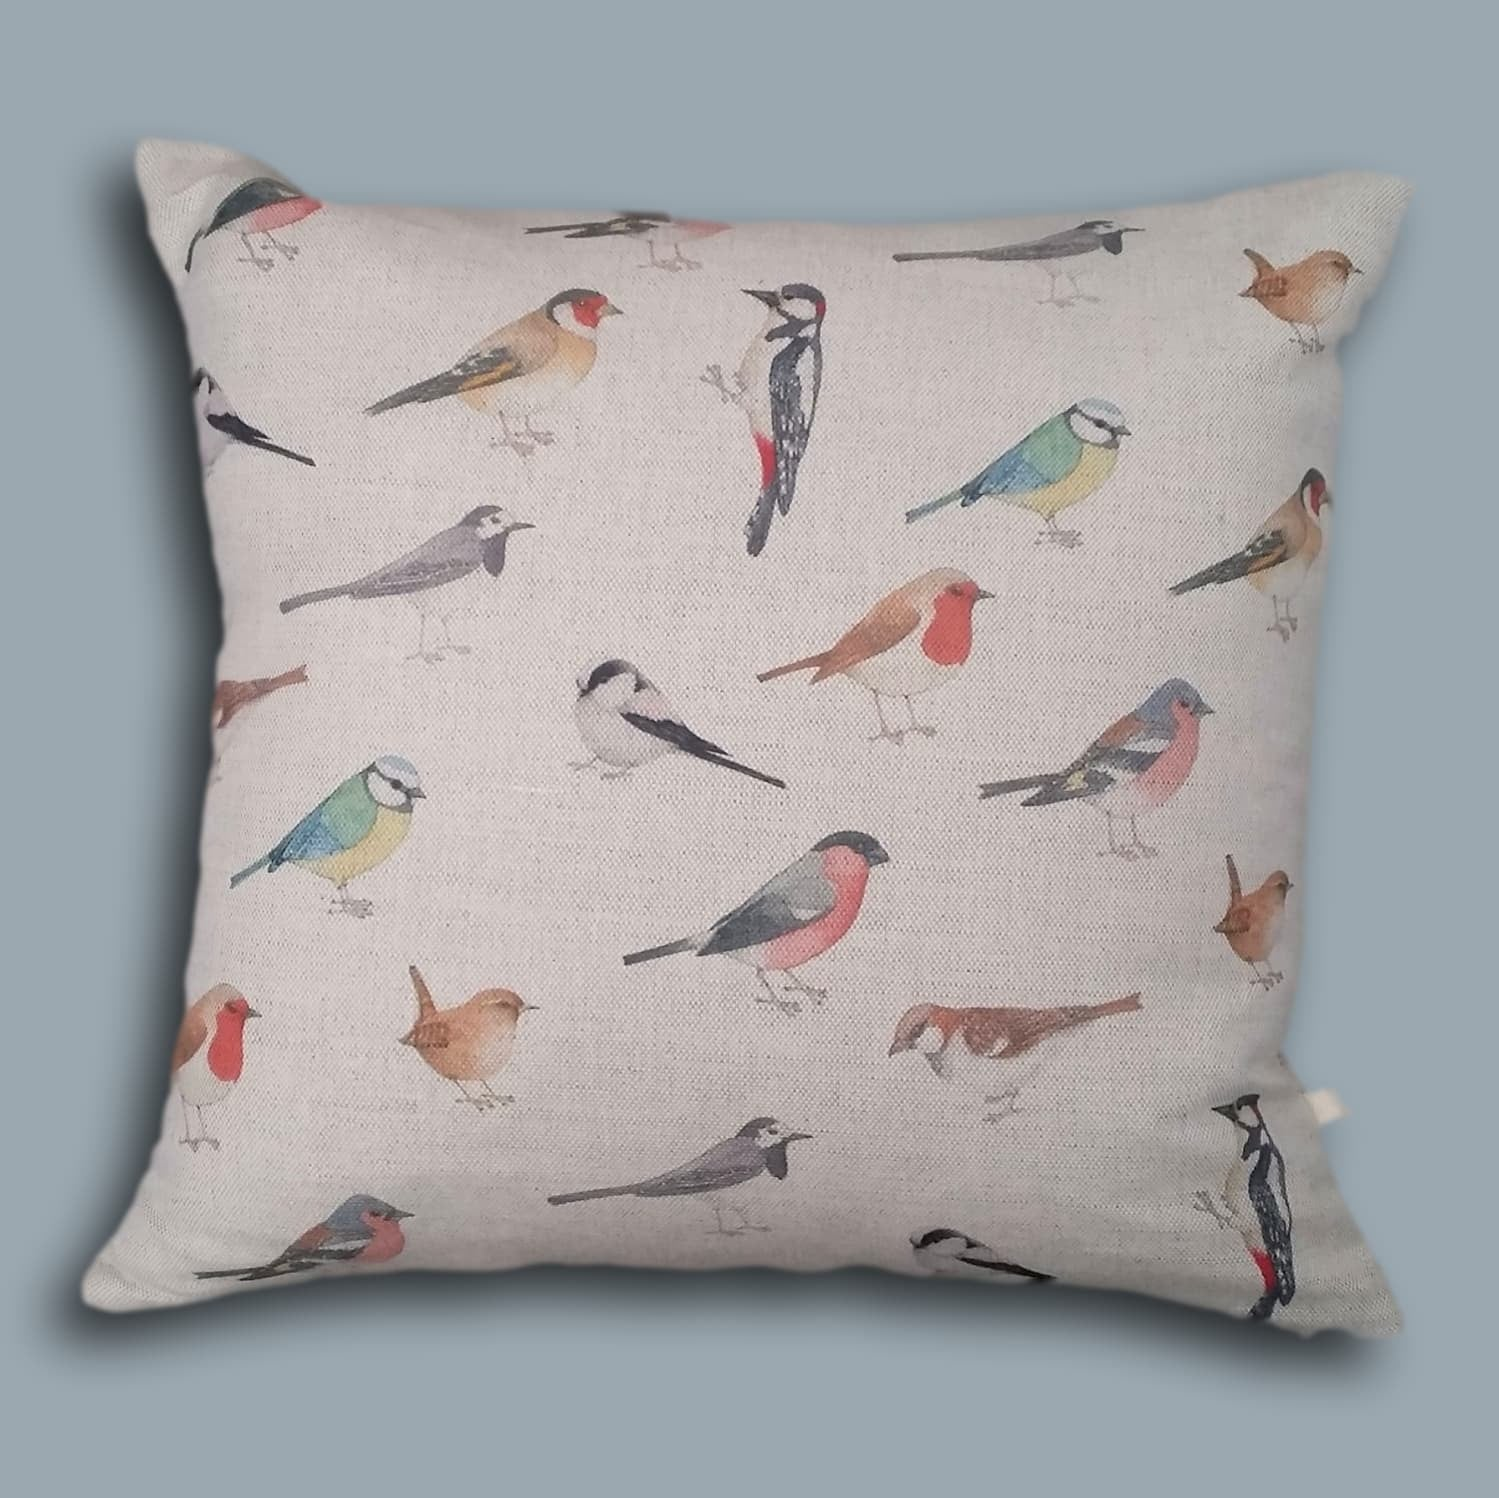 Bird cushion - garden birds